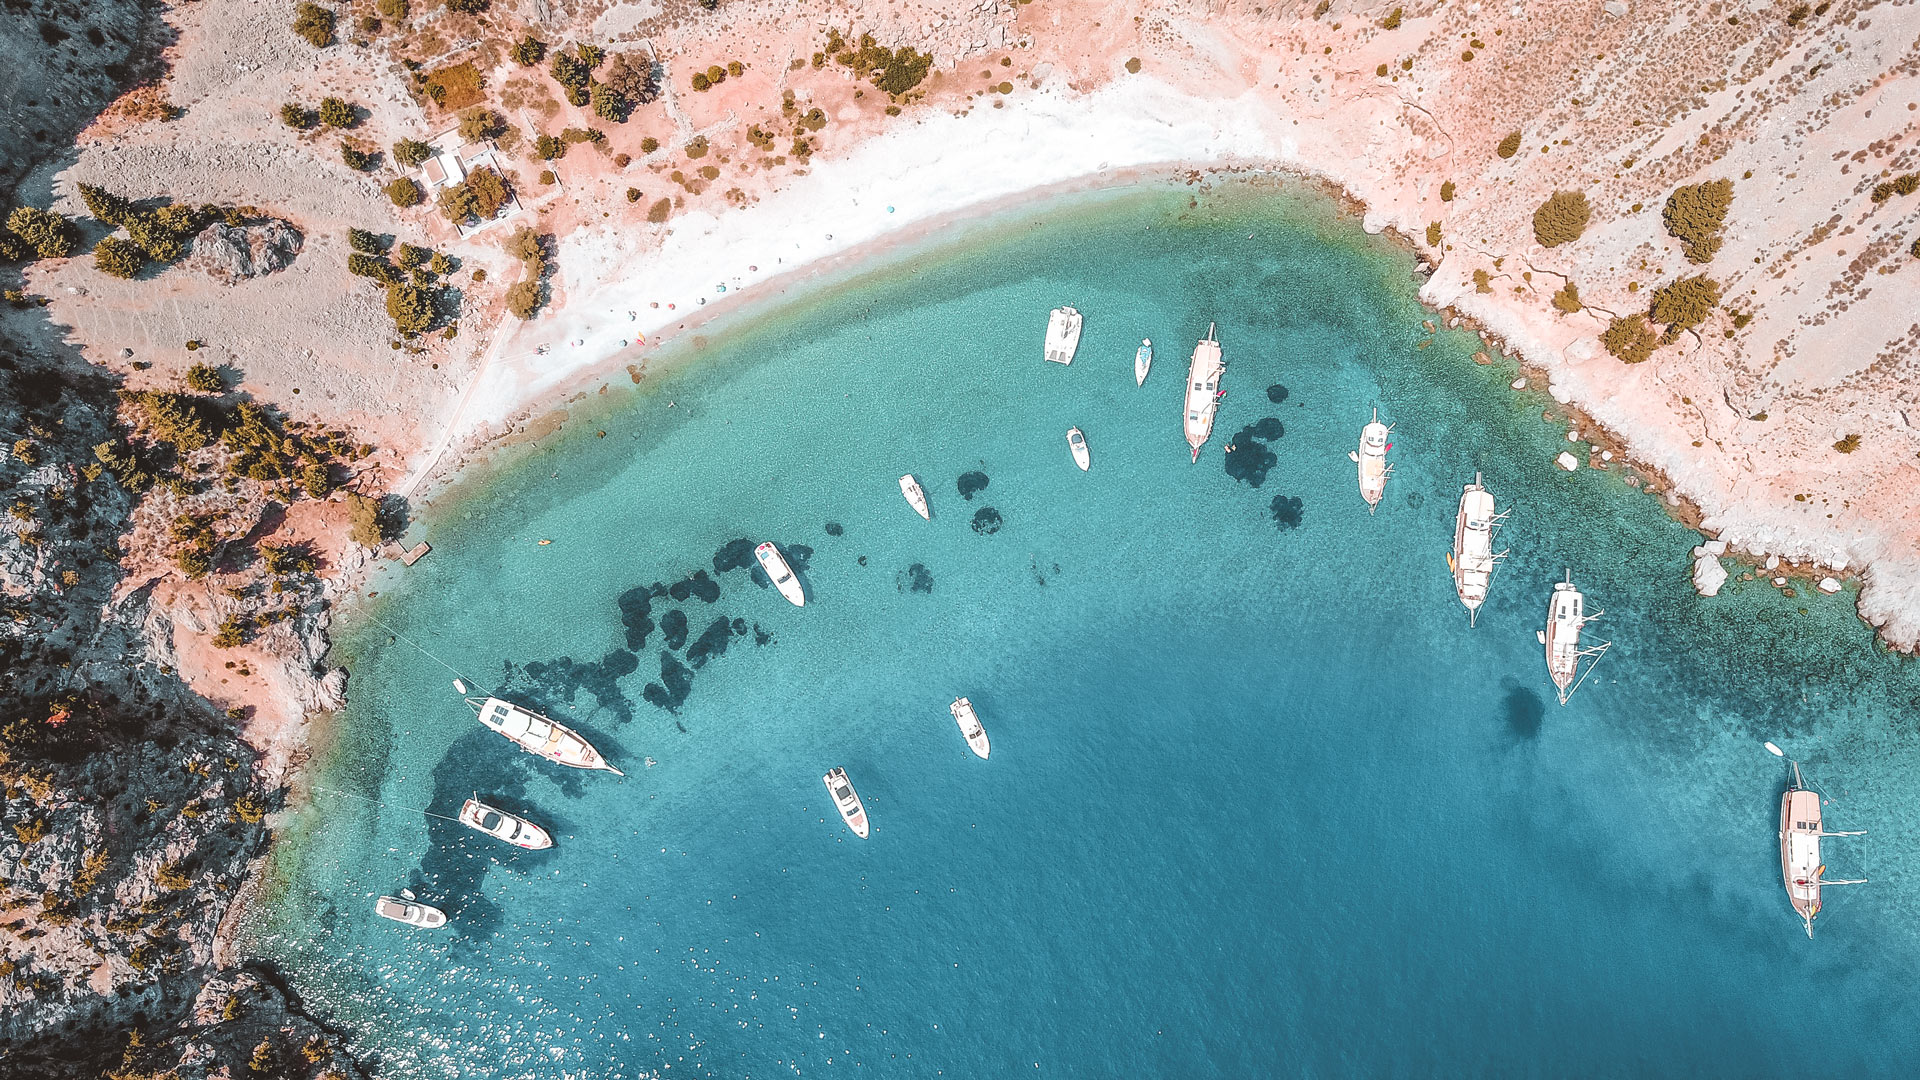 The famous tropical rocky beach of Agios Georgios with yachts docked, Symi island